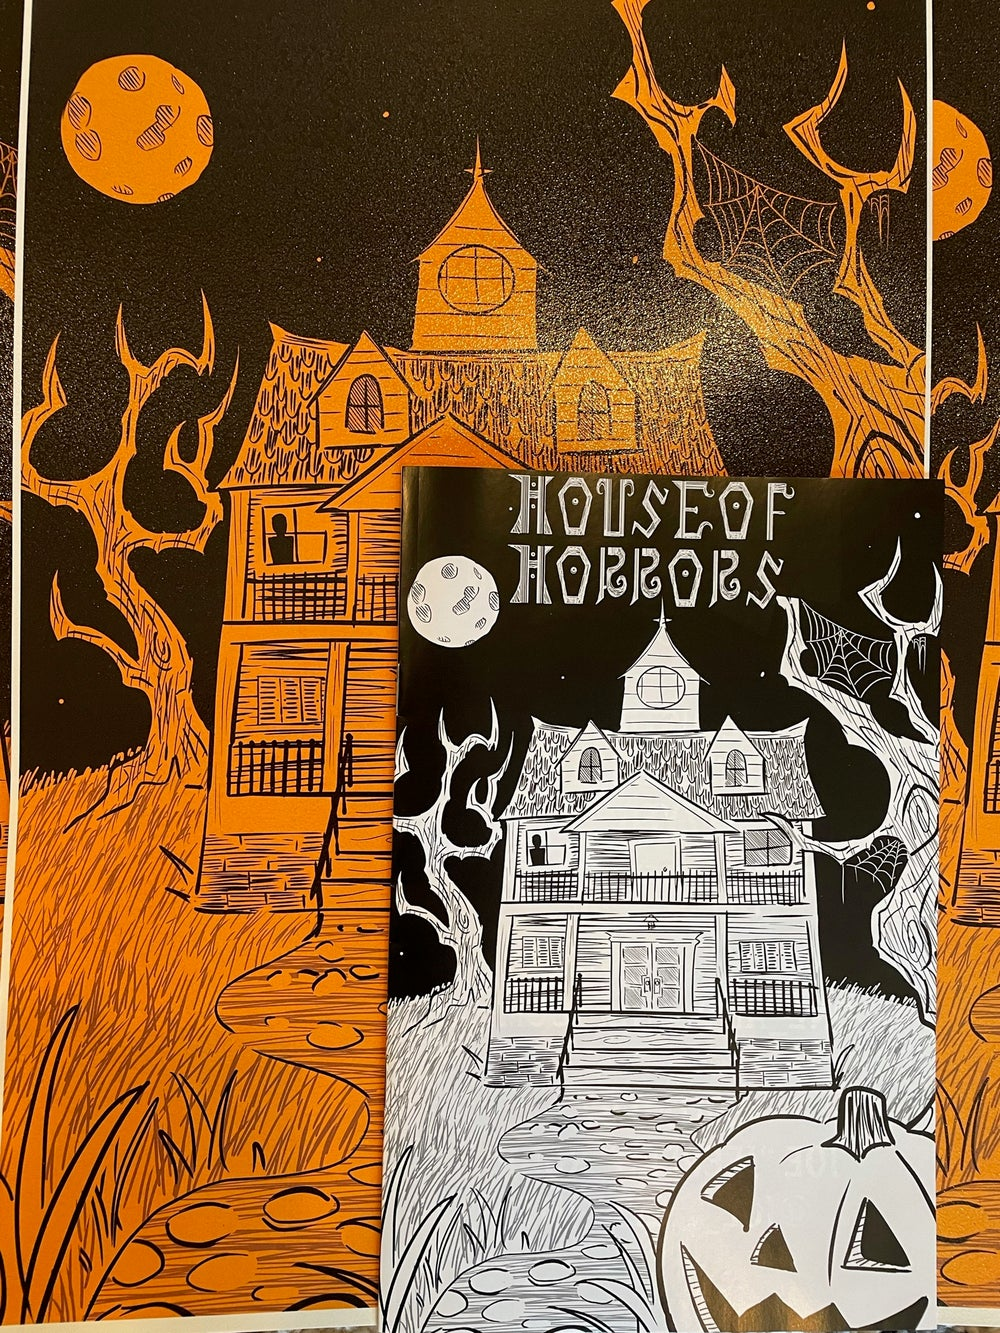 House of Horrors #1 (Poster Included!)